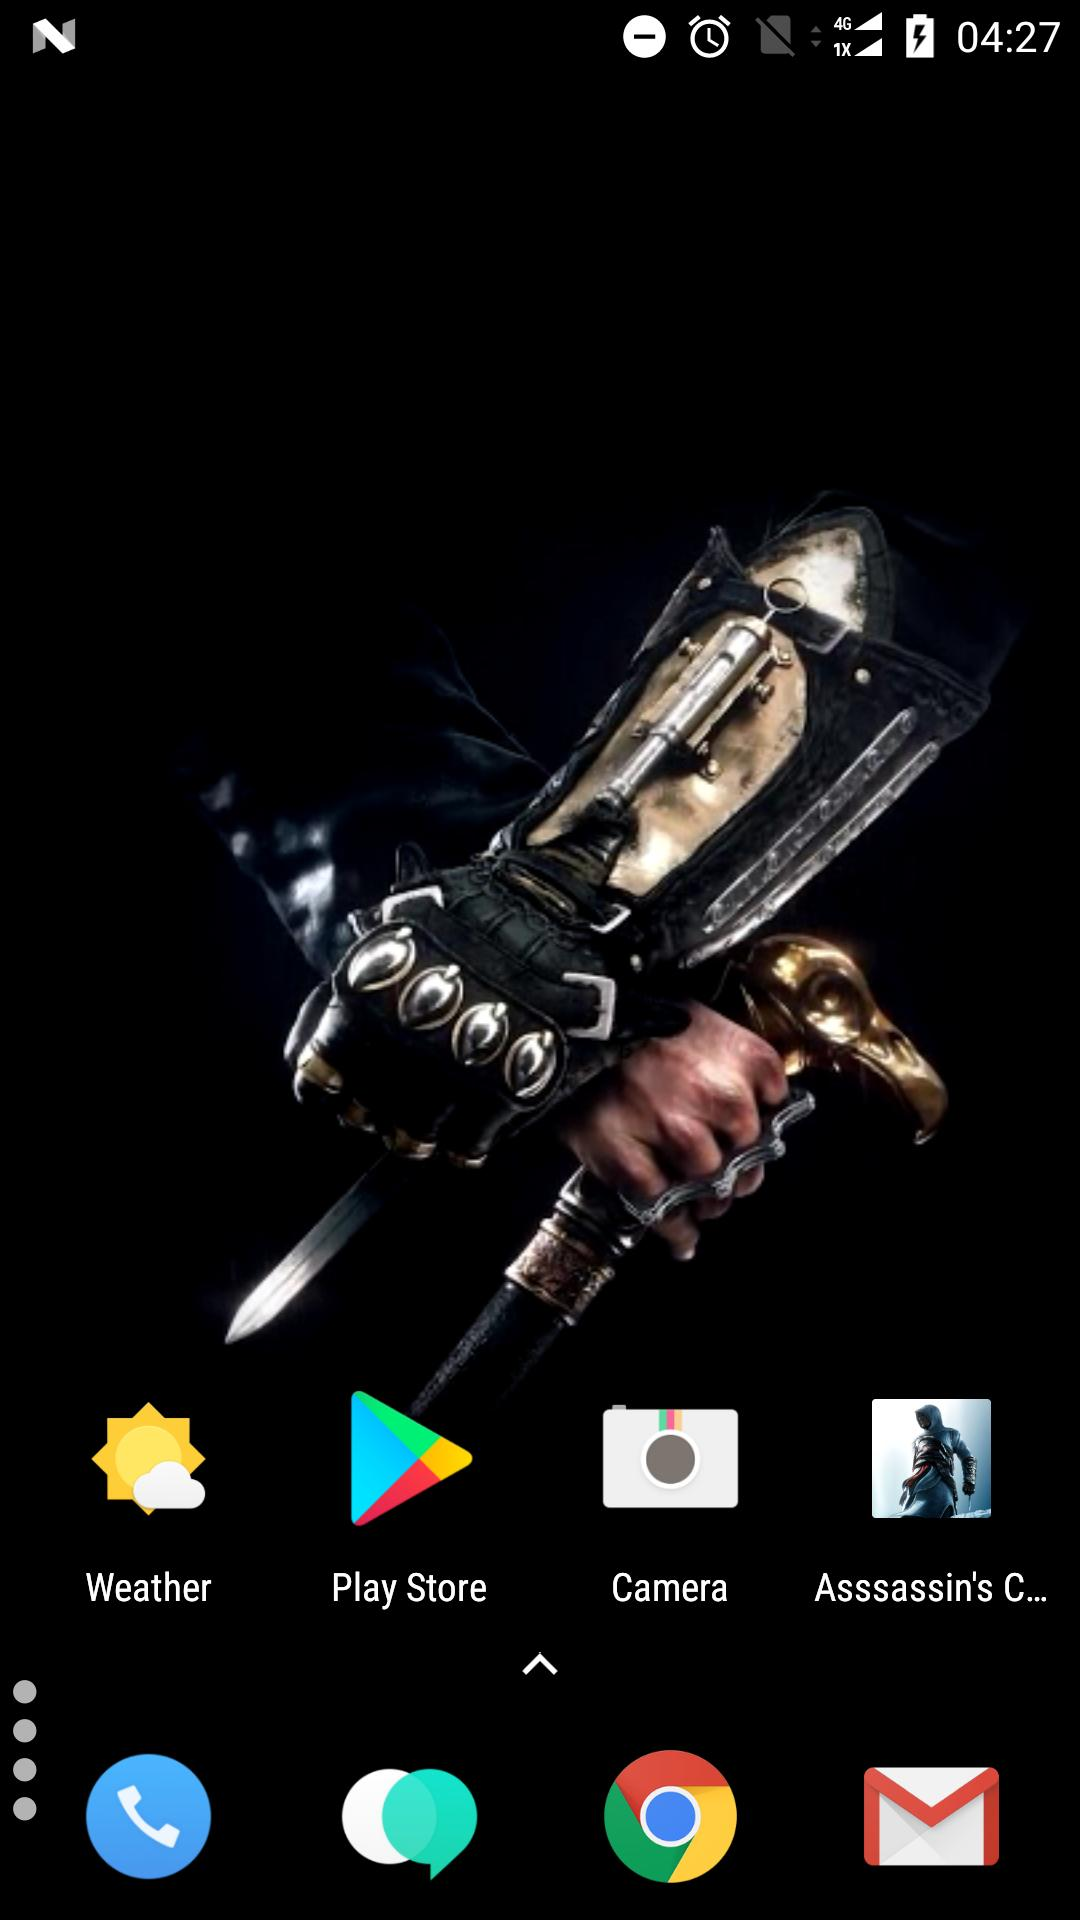 Assassin's Creed Live Wallpaper for Android - APK Download